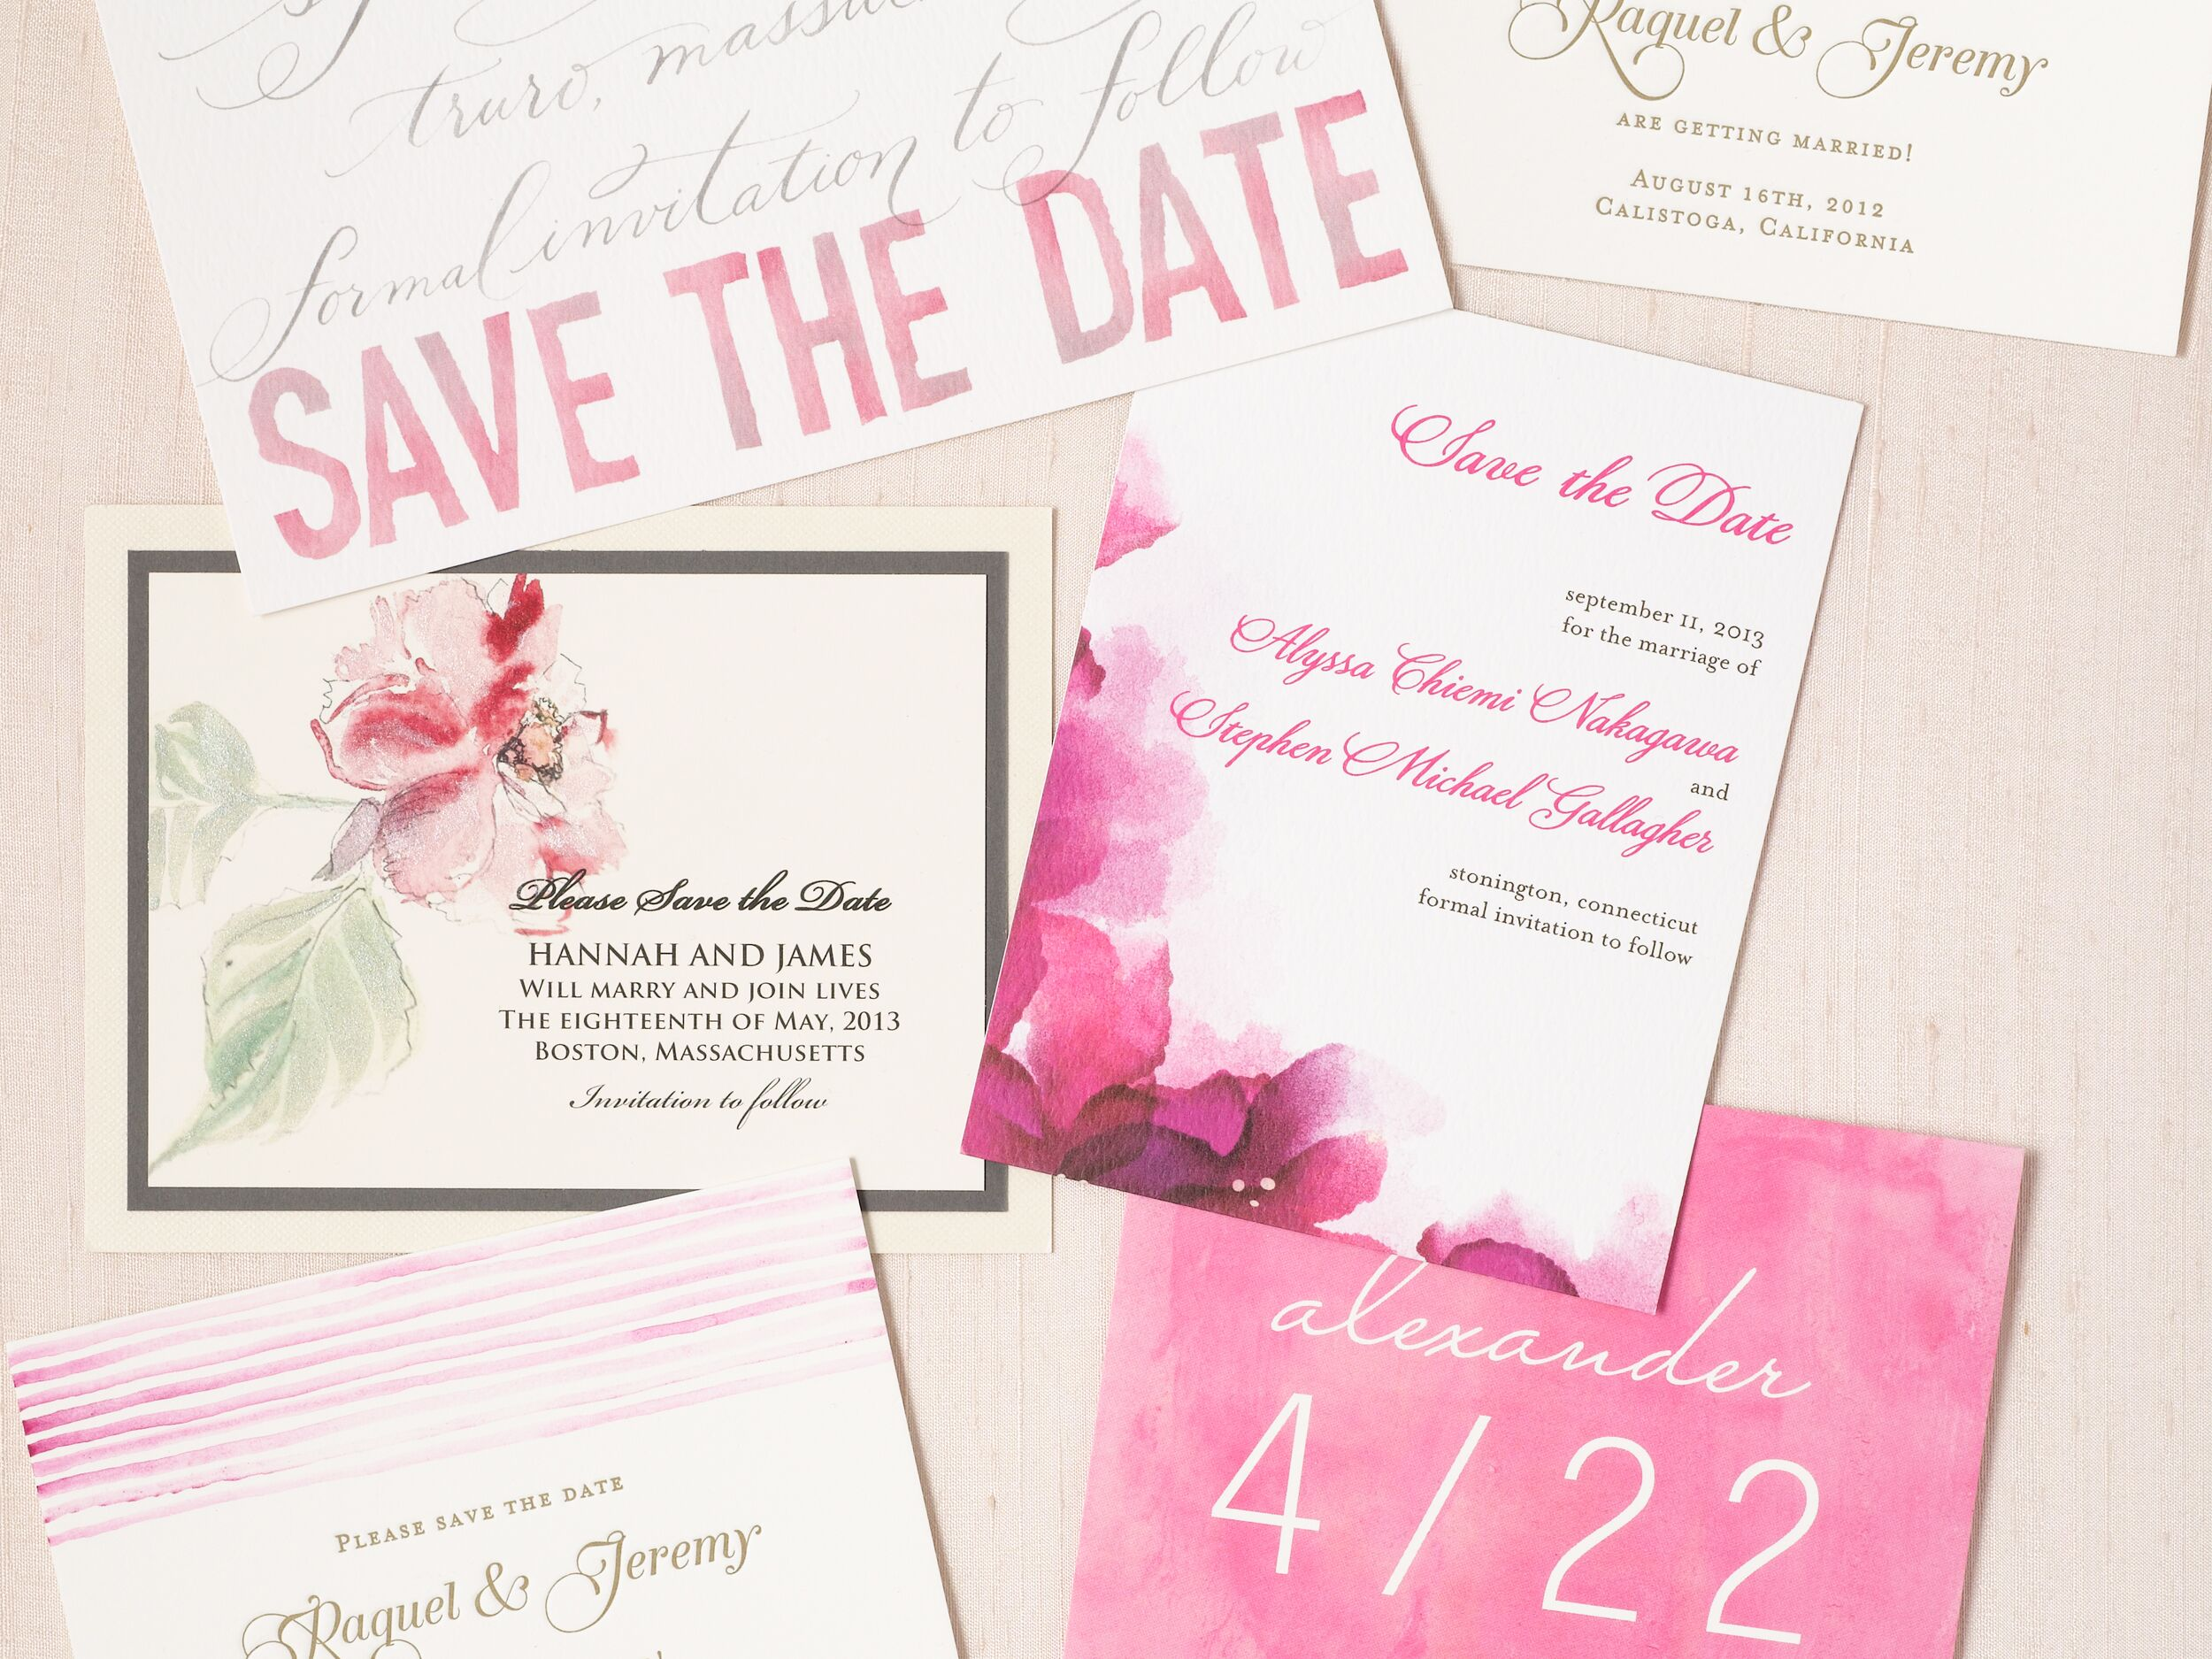 SavetheDate Etiquette Tips – Wedding Invitations and Save the Dates